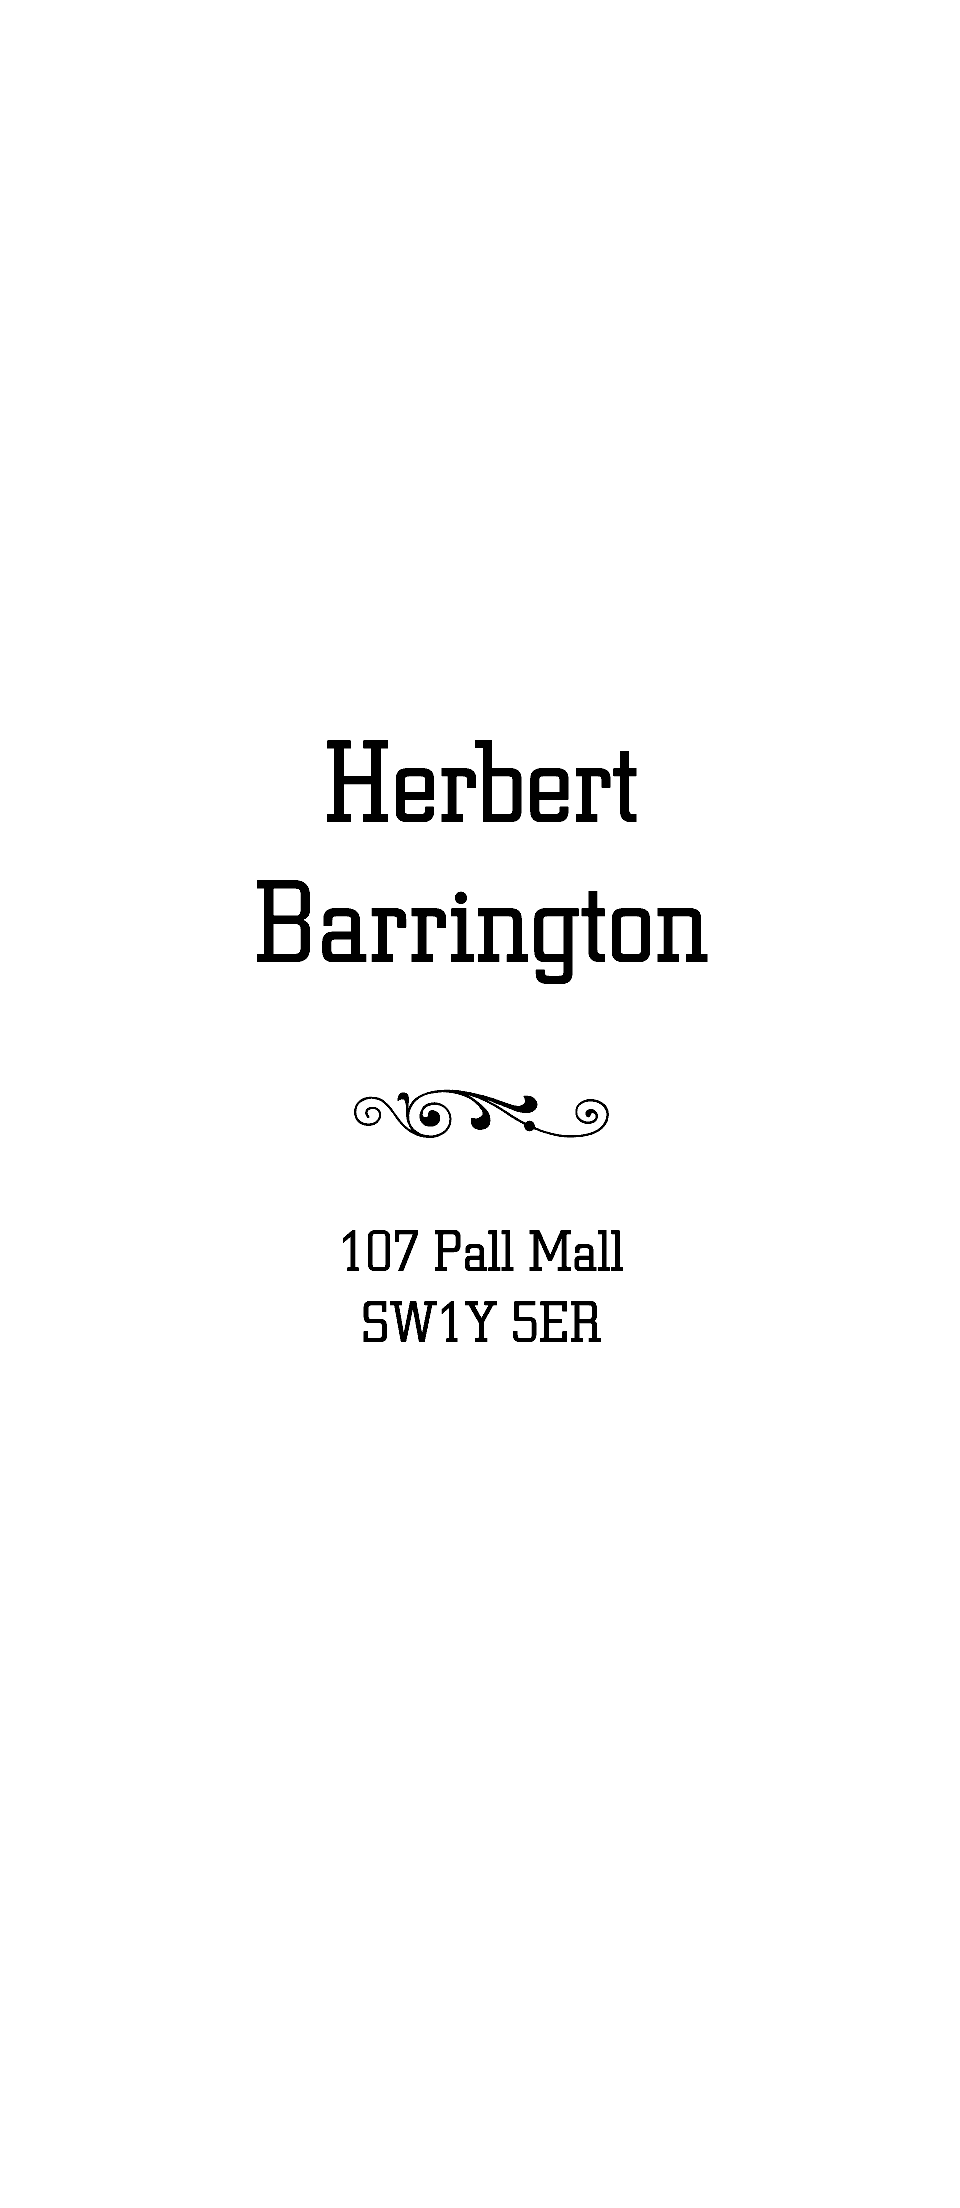 Personalised Stationery : Trafalgar : Barrington